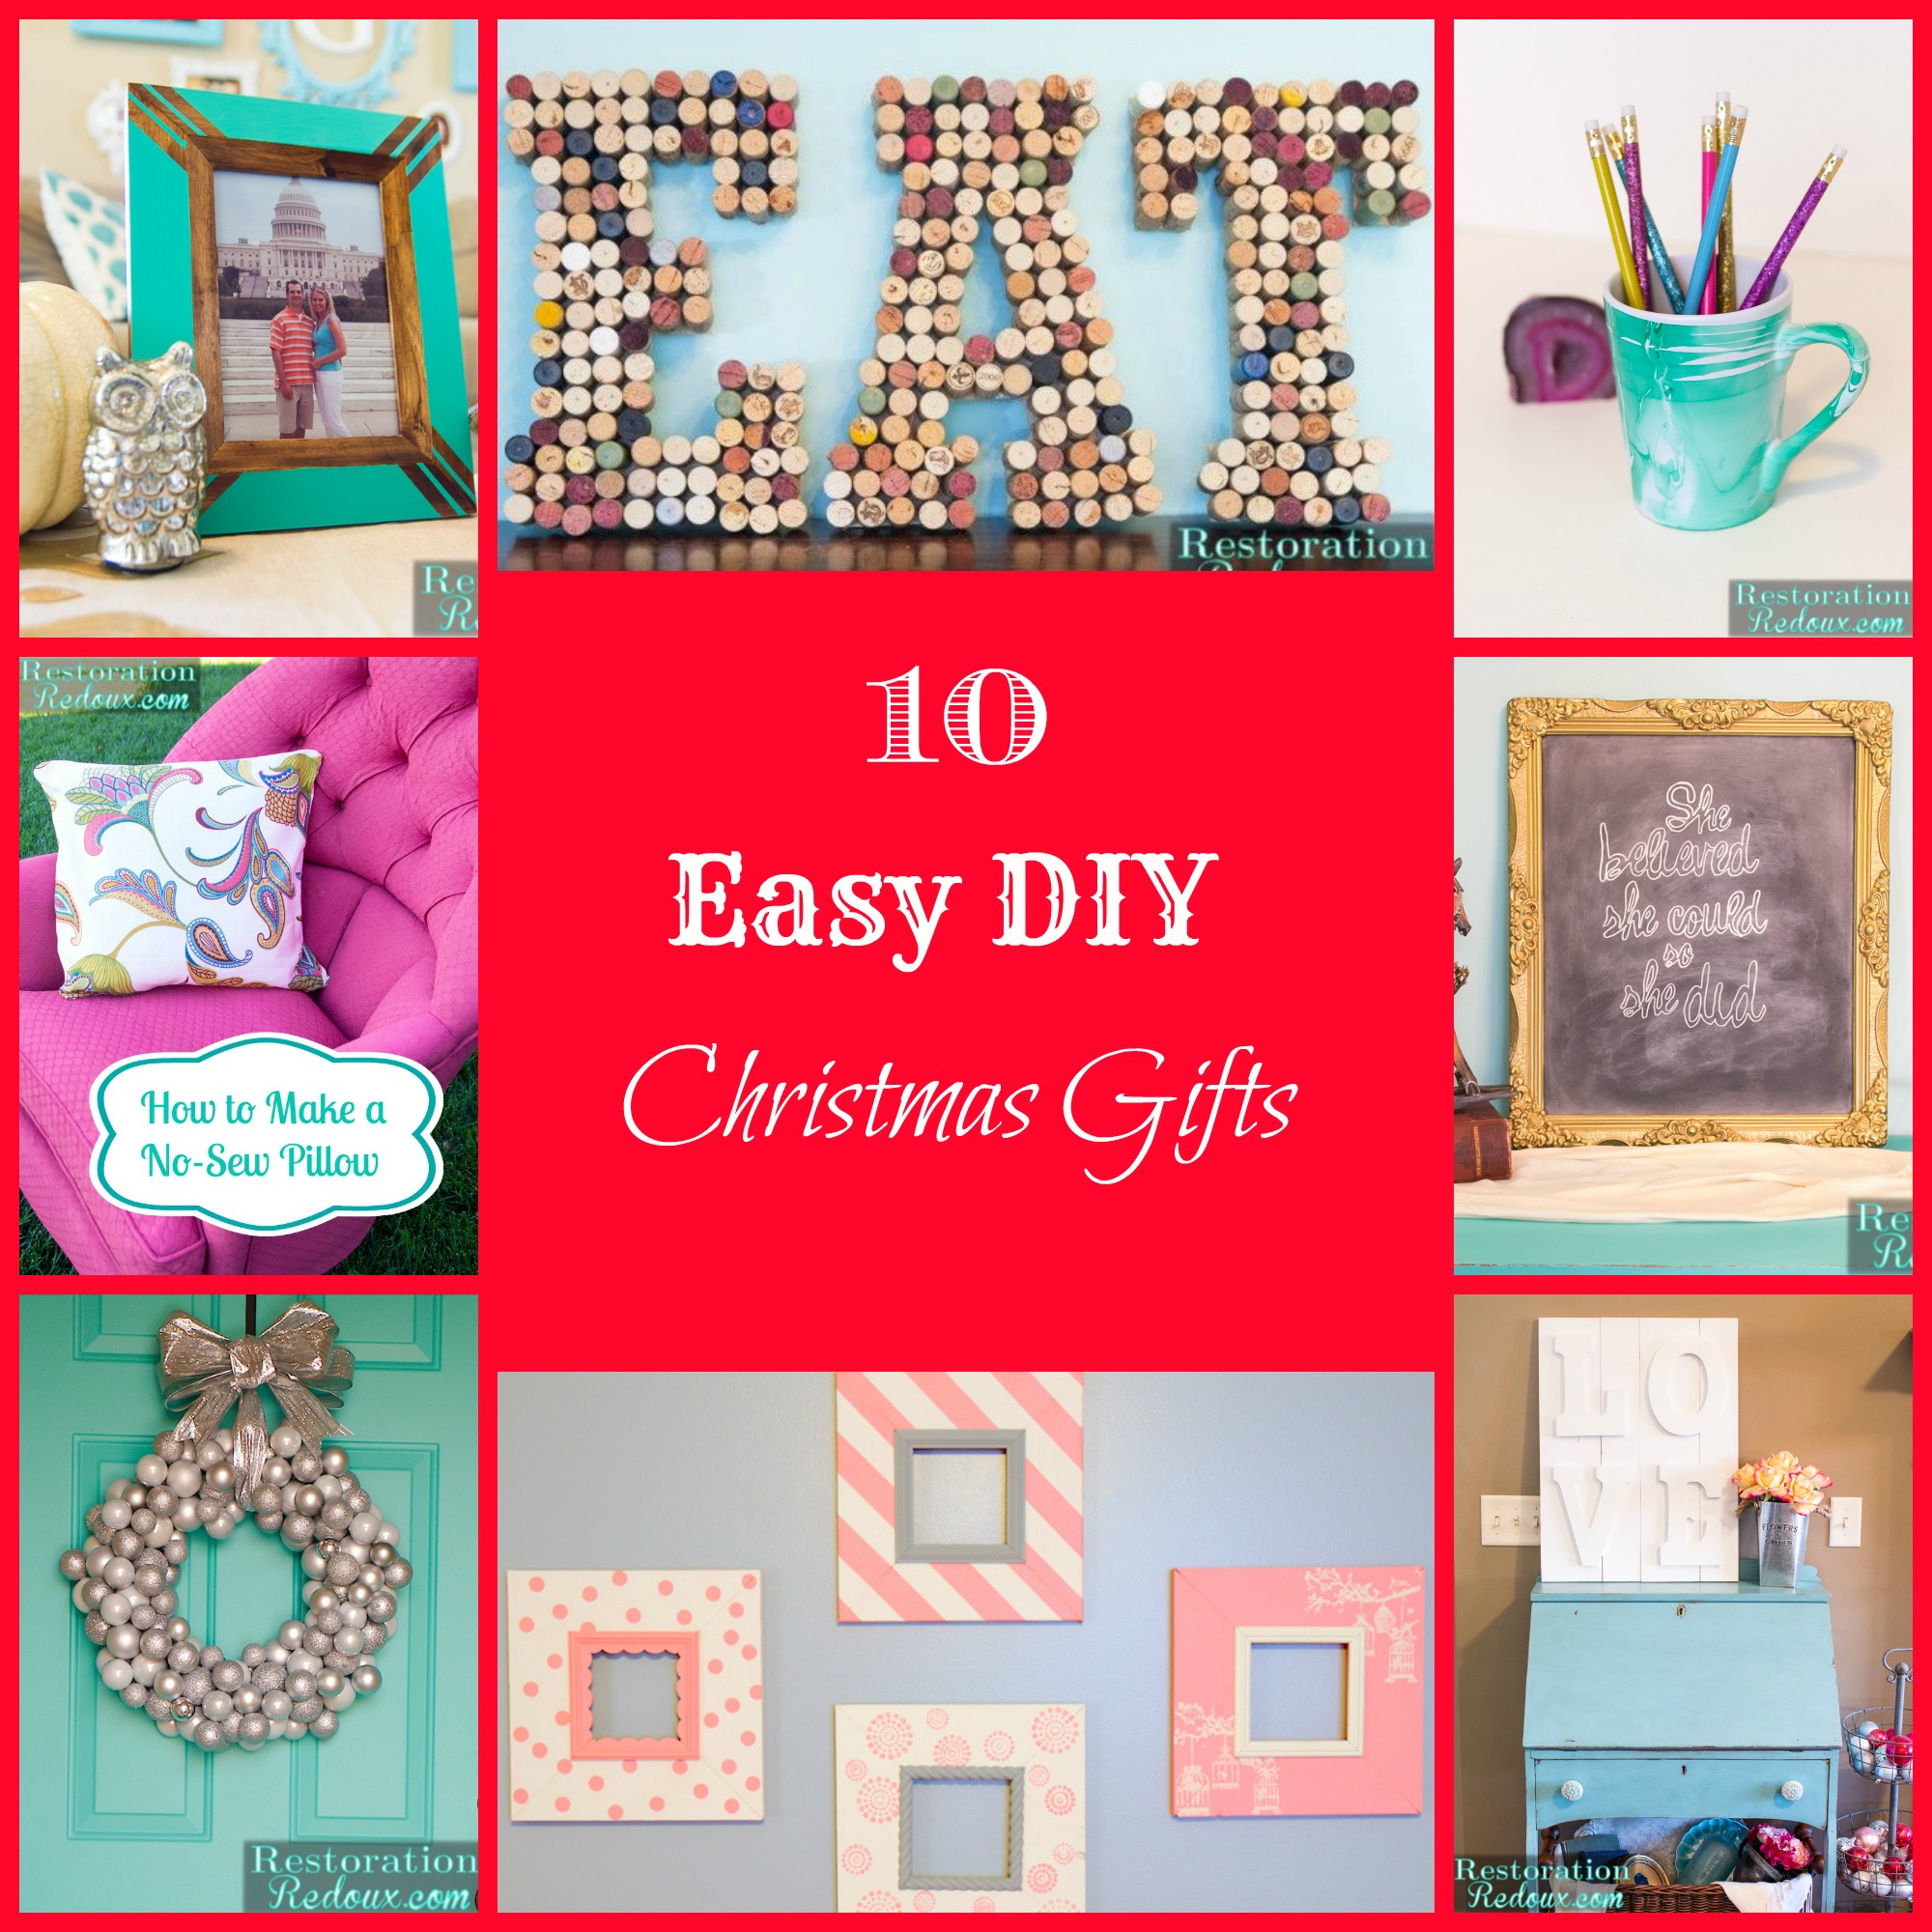 10 Easy DIY Christmas Gifts - Daily Dose of Style